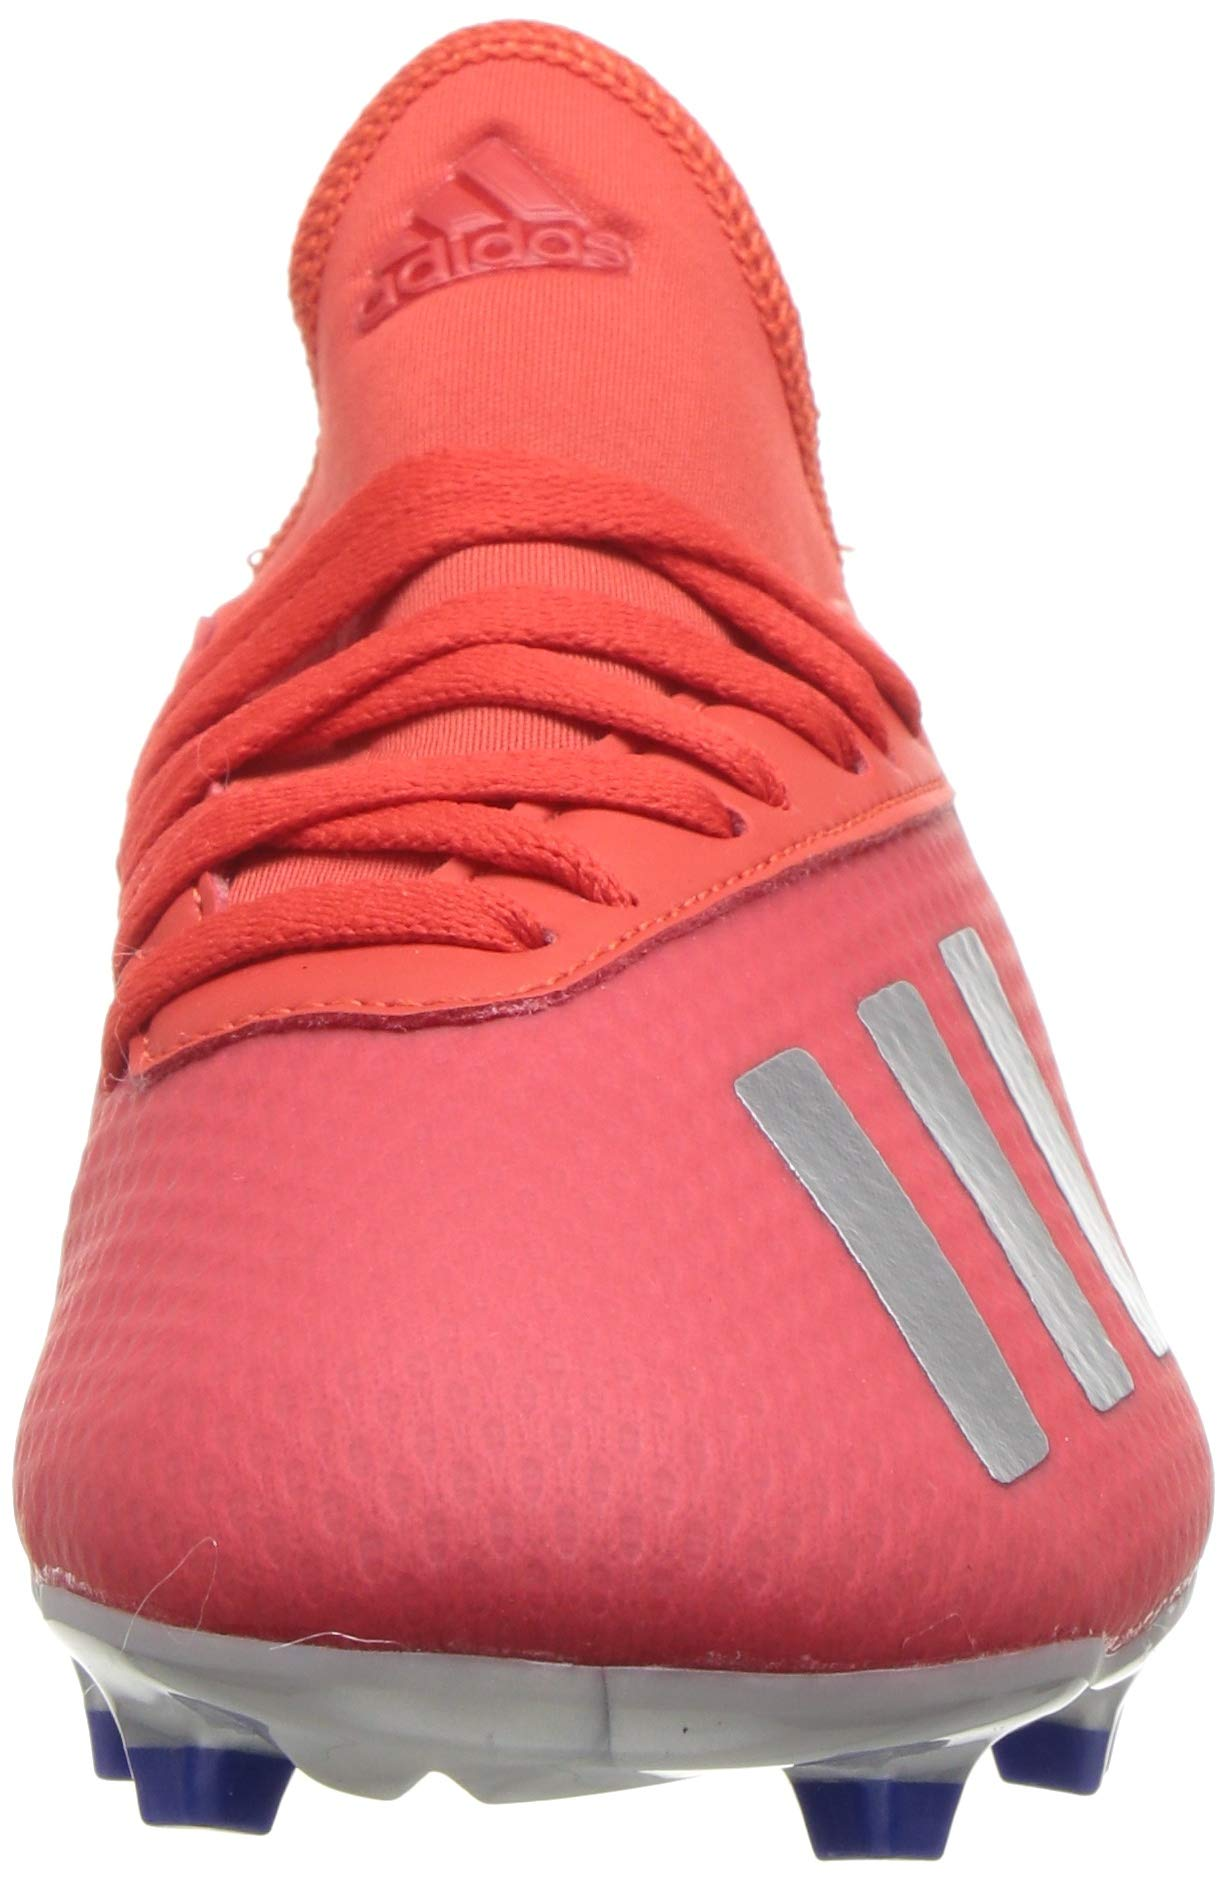 adidas X 18.3 Firm Ground, Active red/Silver Metallic/Bold Blue 13K M US Little Kid by adidas (Image #4)